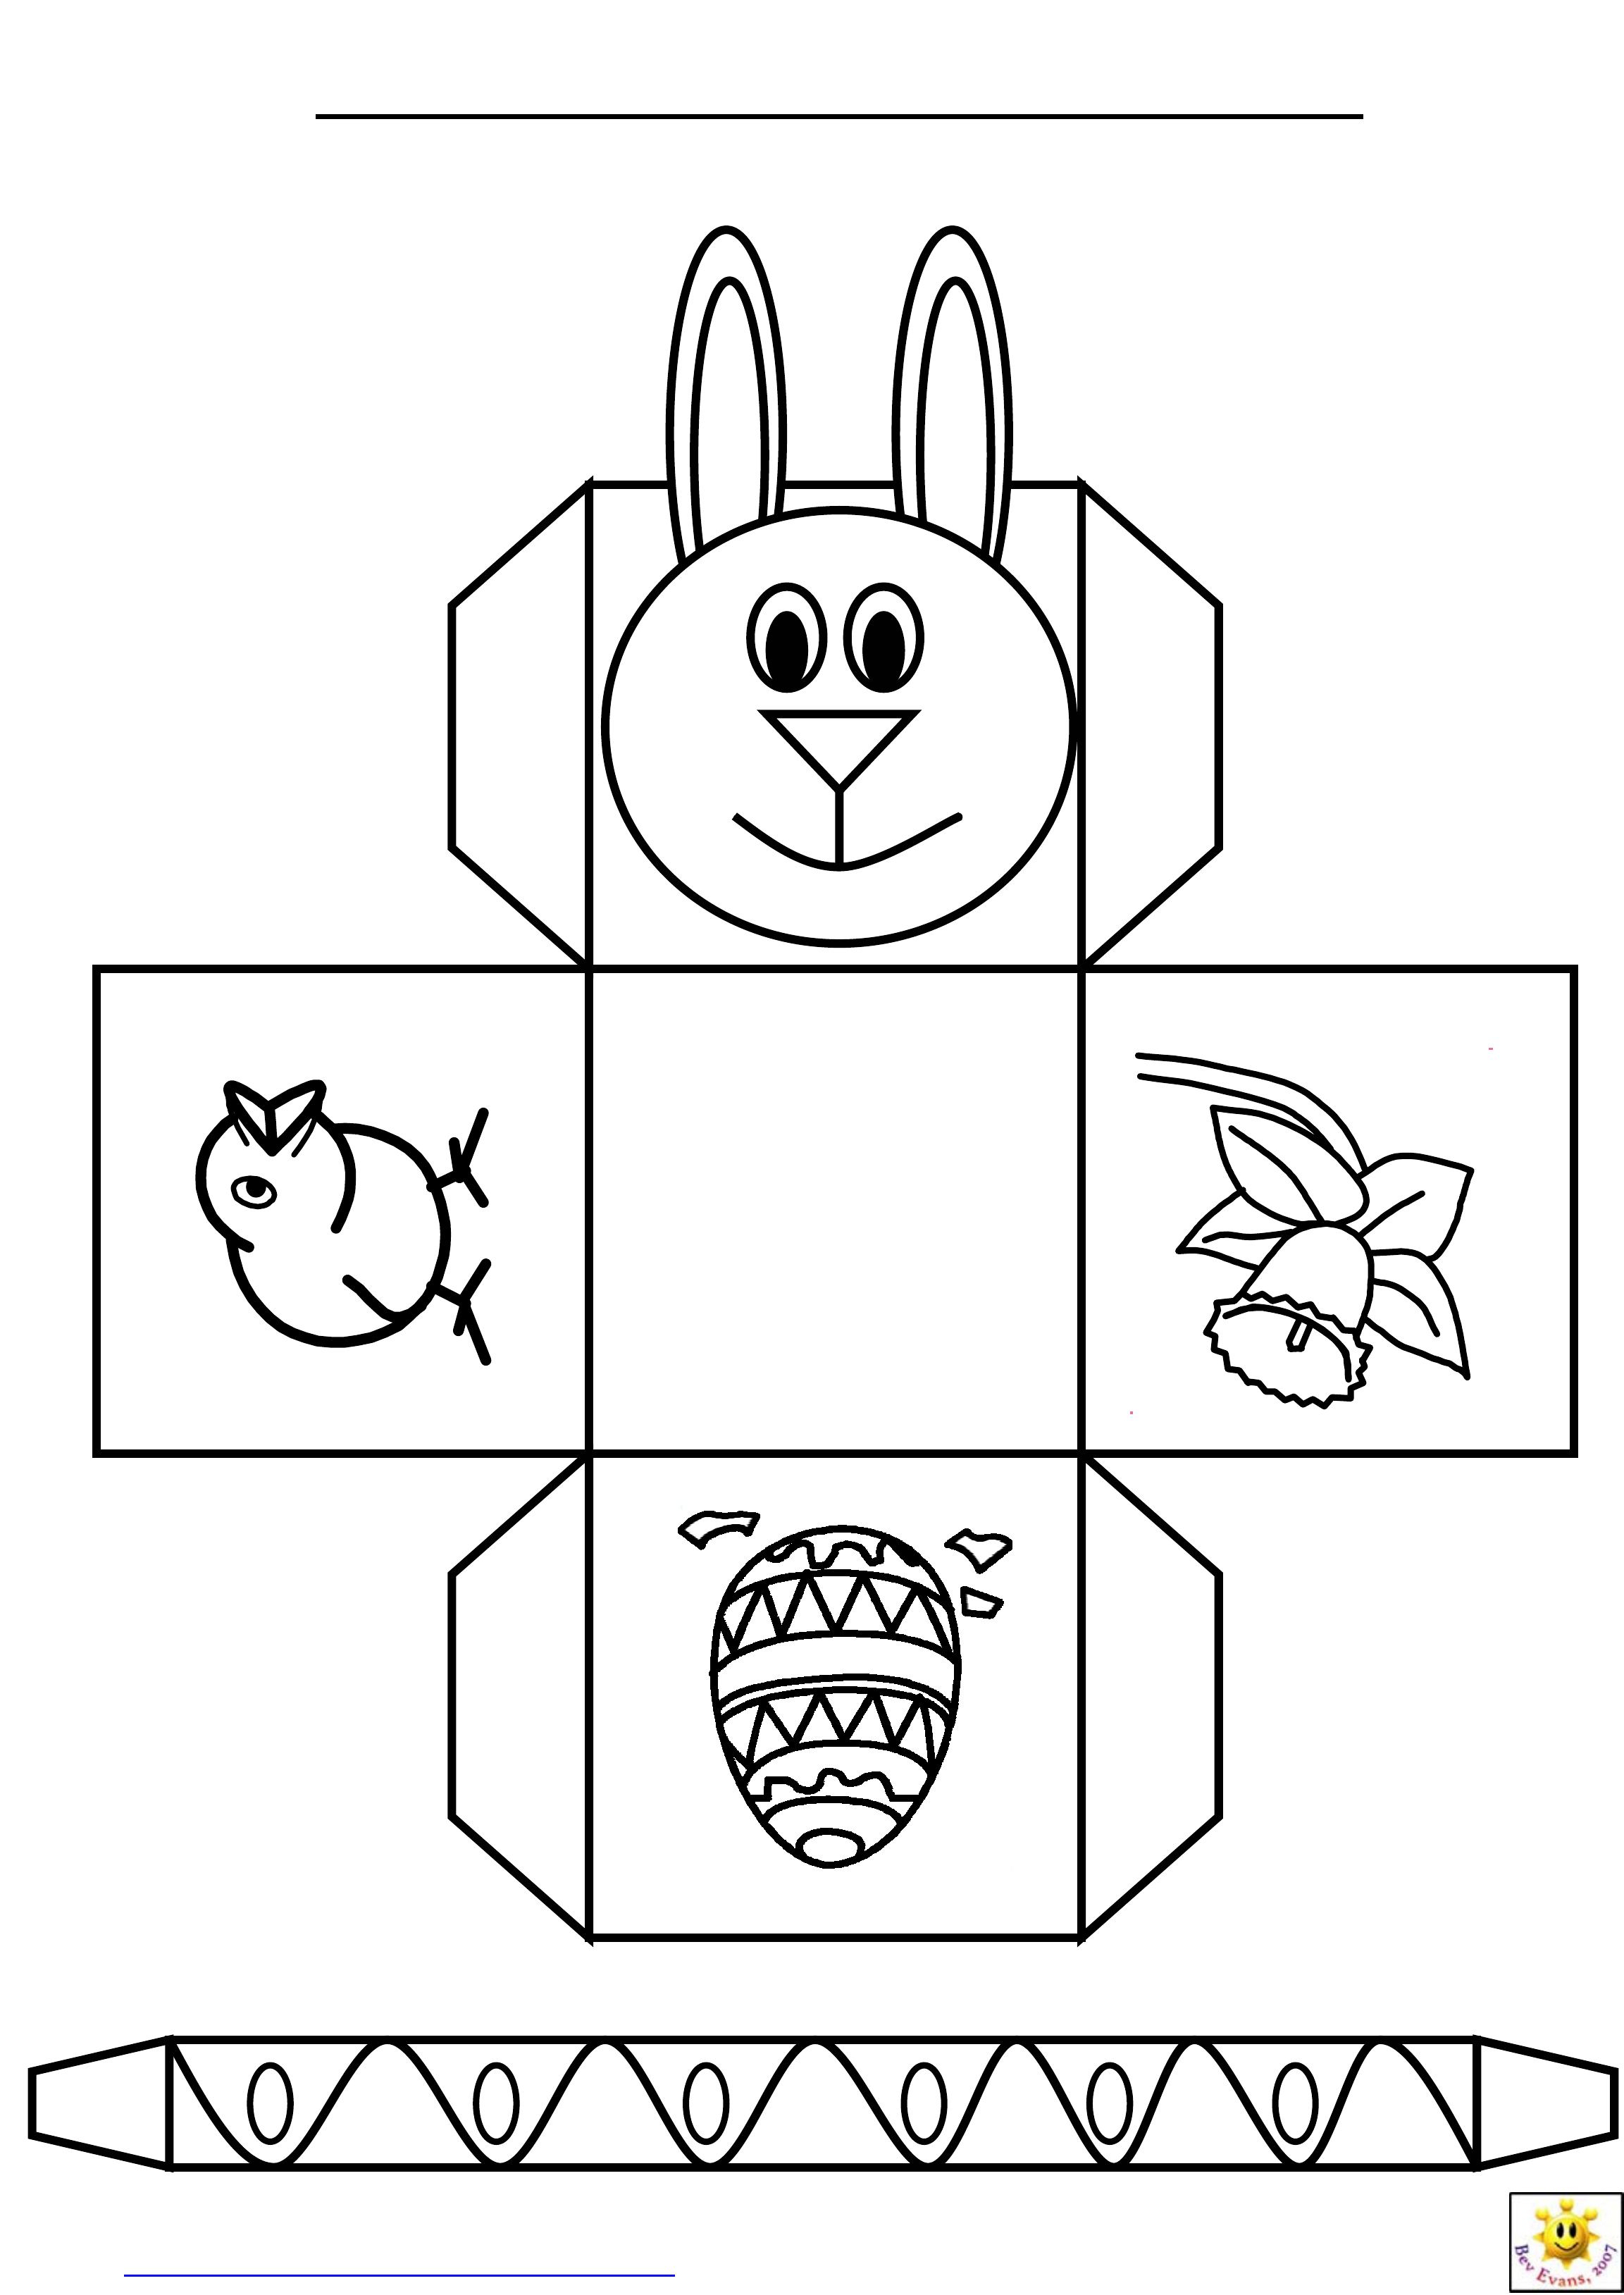 New Ideas Regarding Easter Baskets Templates Pictures | Resume And - Free Printable Easter Egg Basket Templates